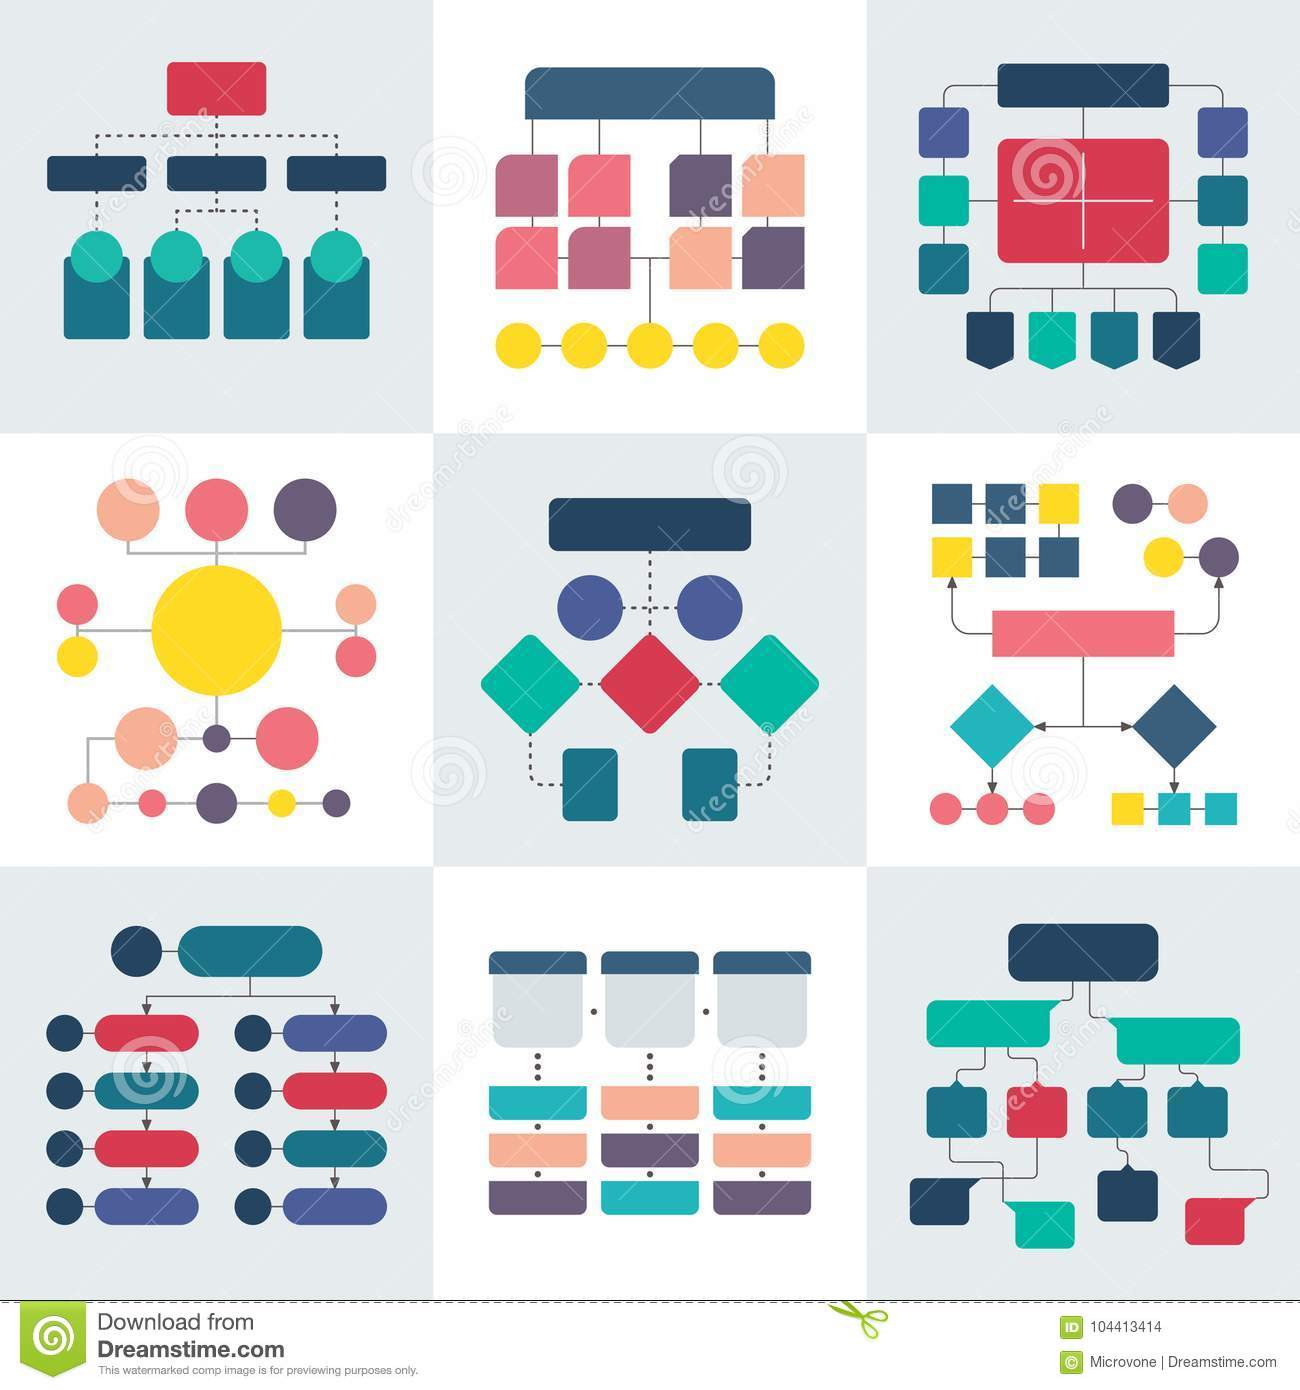 Flowchart schemes and hierarchy diagrams. Workflow chart vector elements